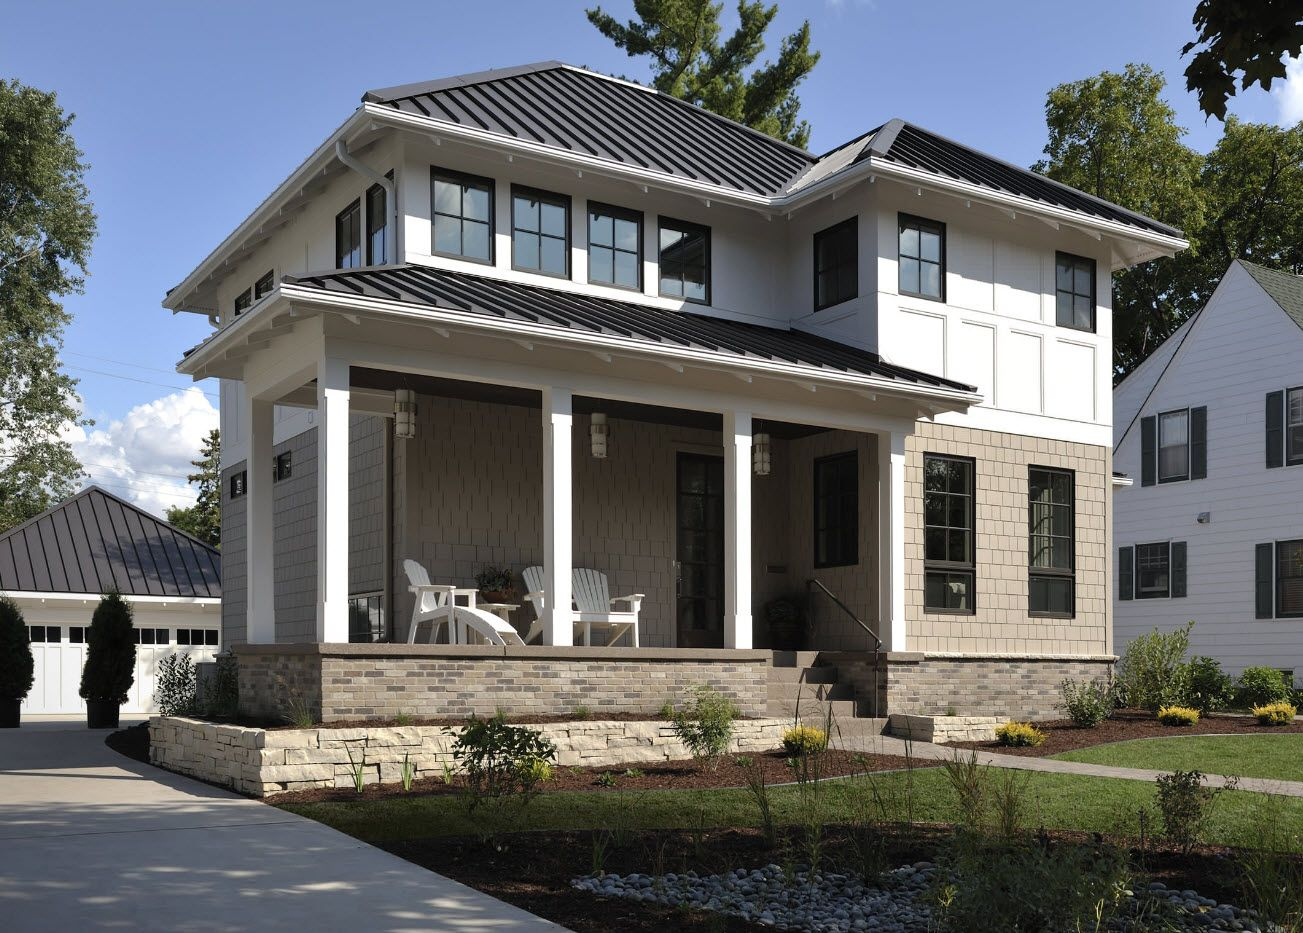 On This Craftsman Modern Farmhouse Is A Hipped Roof Then A Portion Of The Home Has A Portion That Stick Out A Bit C Hip Roof Design House Exterior Roof Design